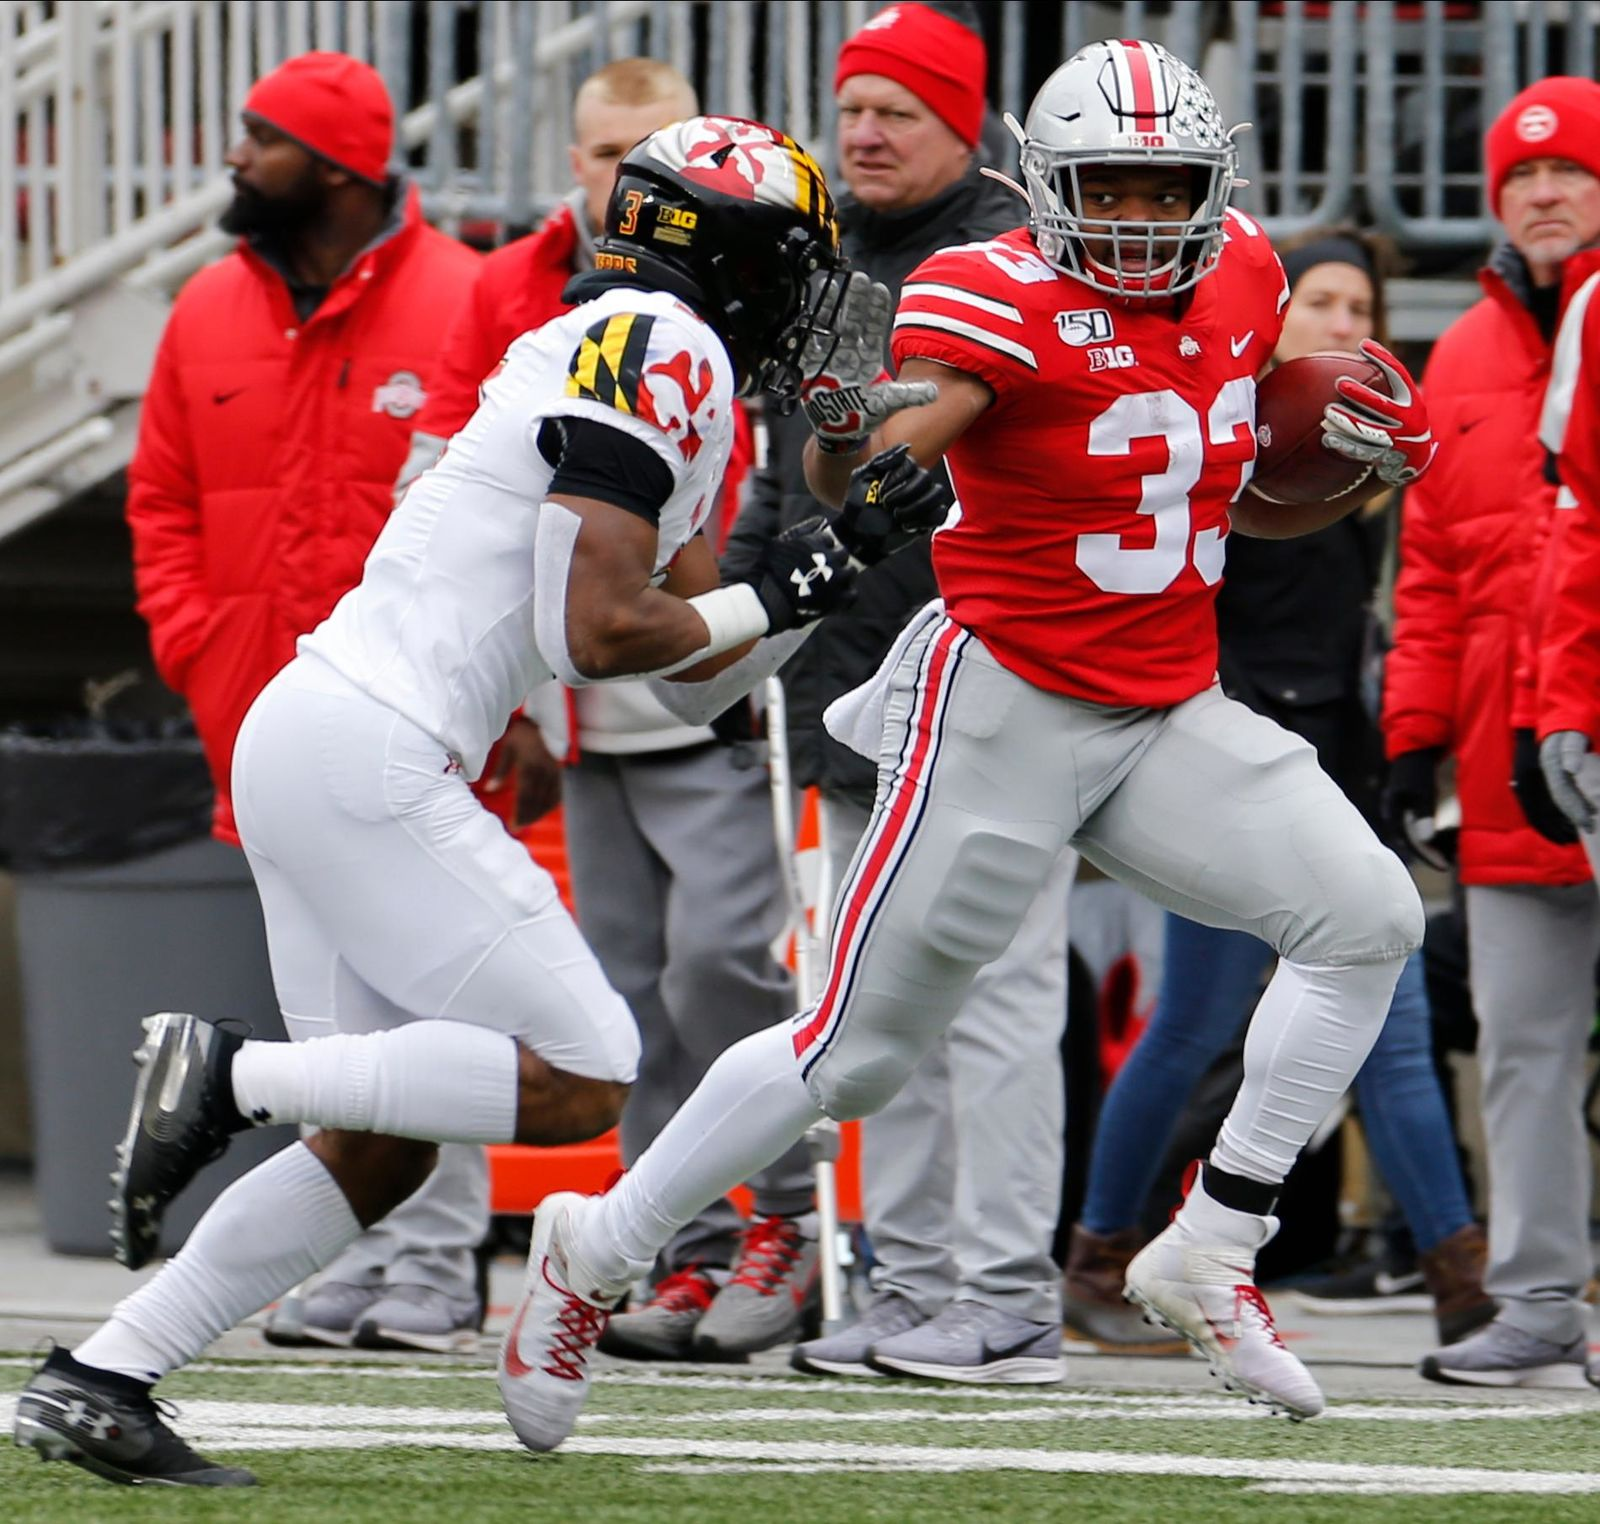 Ohio State running back Master Teague, right, tries to run around Maryland defensive back Nick Cross during the first half of an NCAA college football game, Saturday, Nov. 9, 2019, in Columbus, Ohio. (AP Photo/Jay LaPrete)